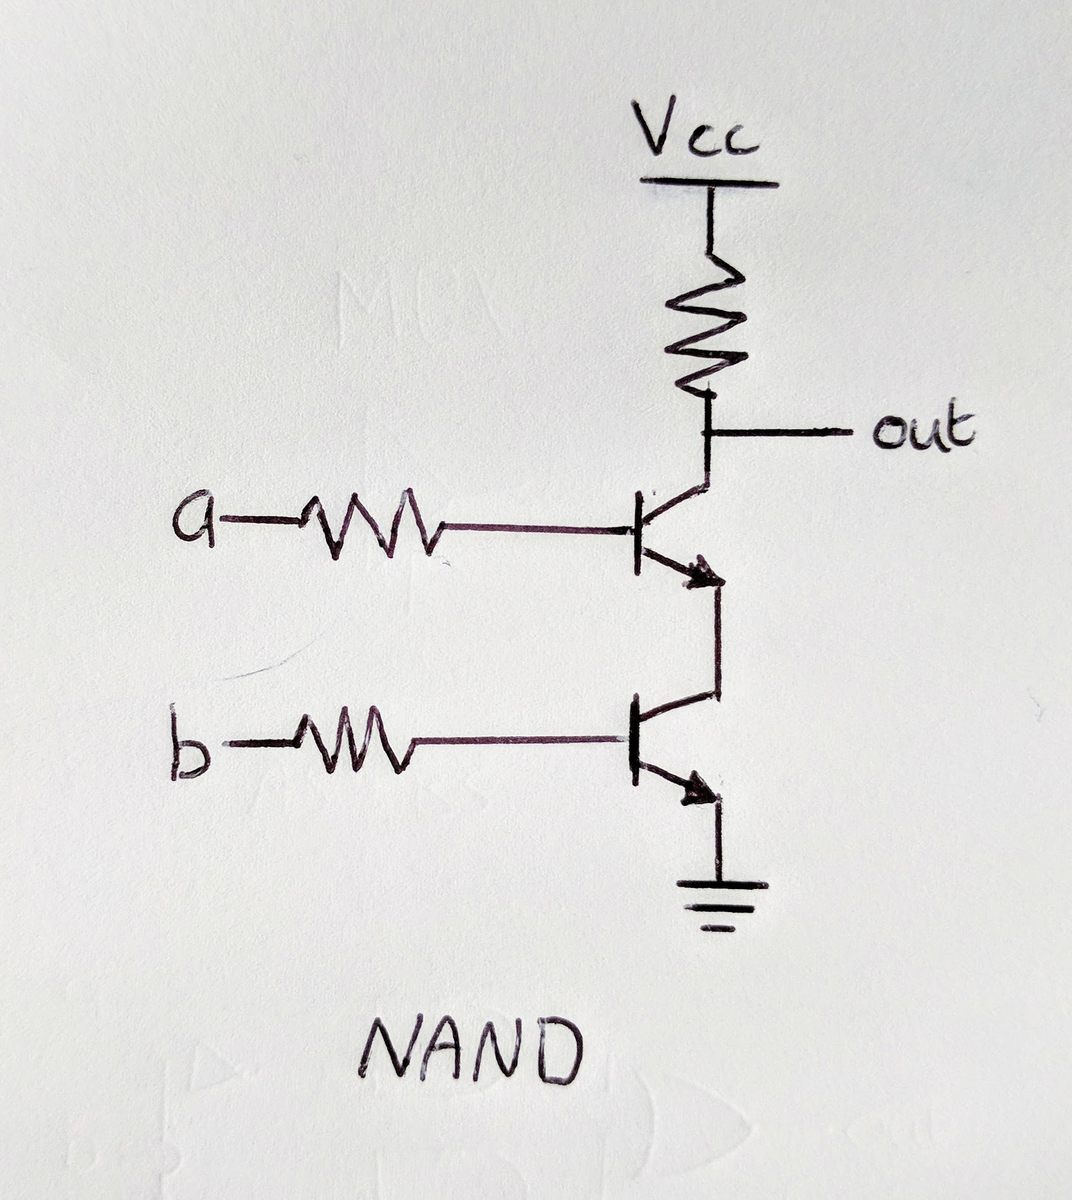 NAND made with transistors